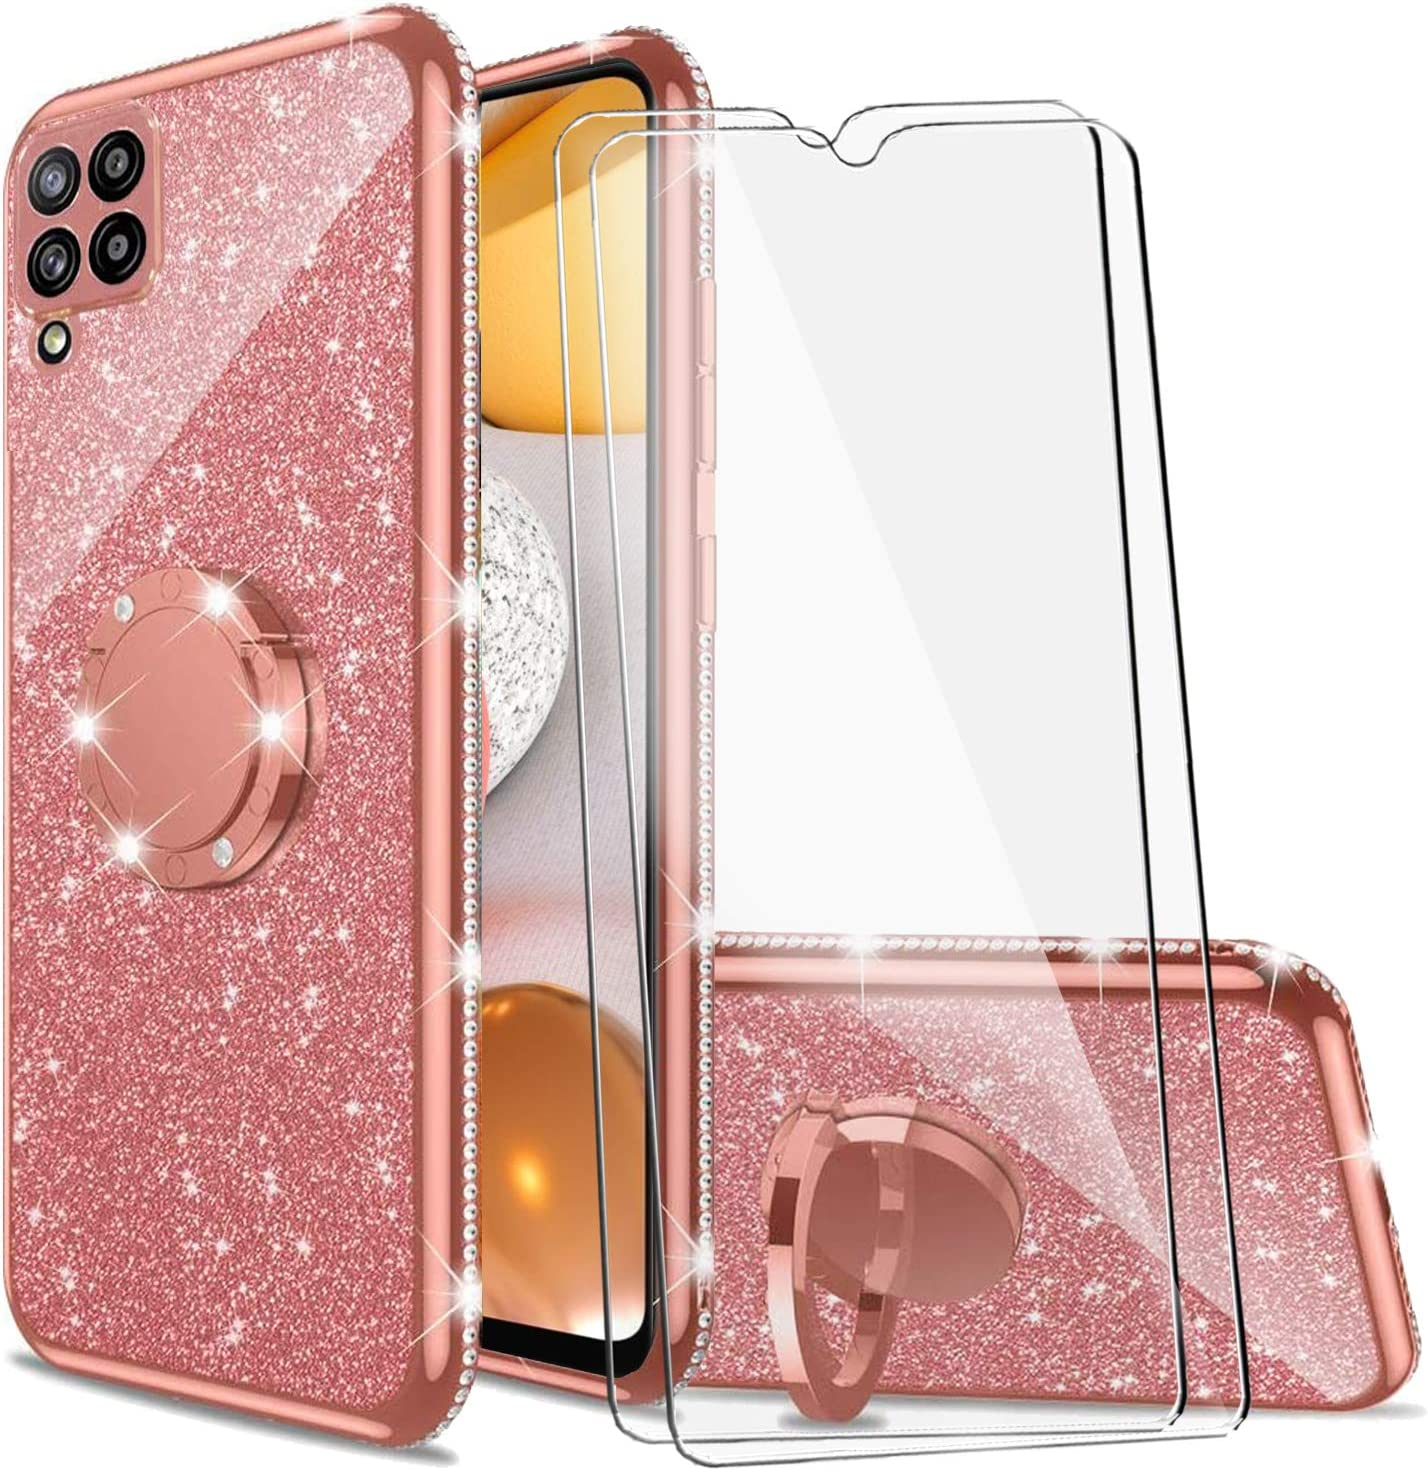 BTShare for Samsung Galaxy A12 5G Case & Tempered Glass Screen Protector (2 Packs), Luxury Glitter Sparkles Cute Bling TPU Silicone Kickstand Cover Slim fit for Women Girls Ring Holder Grip, Pink